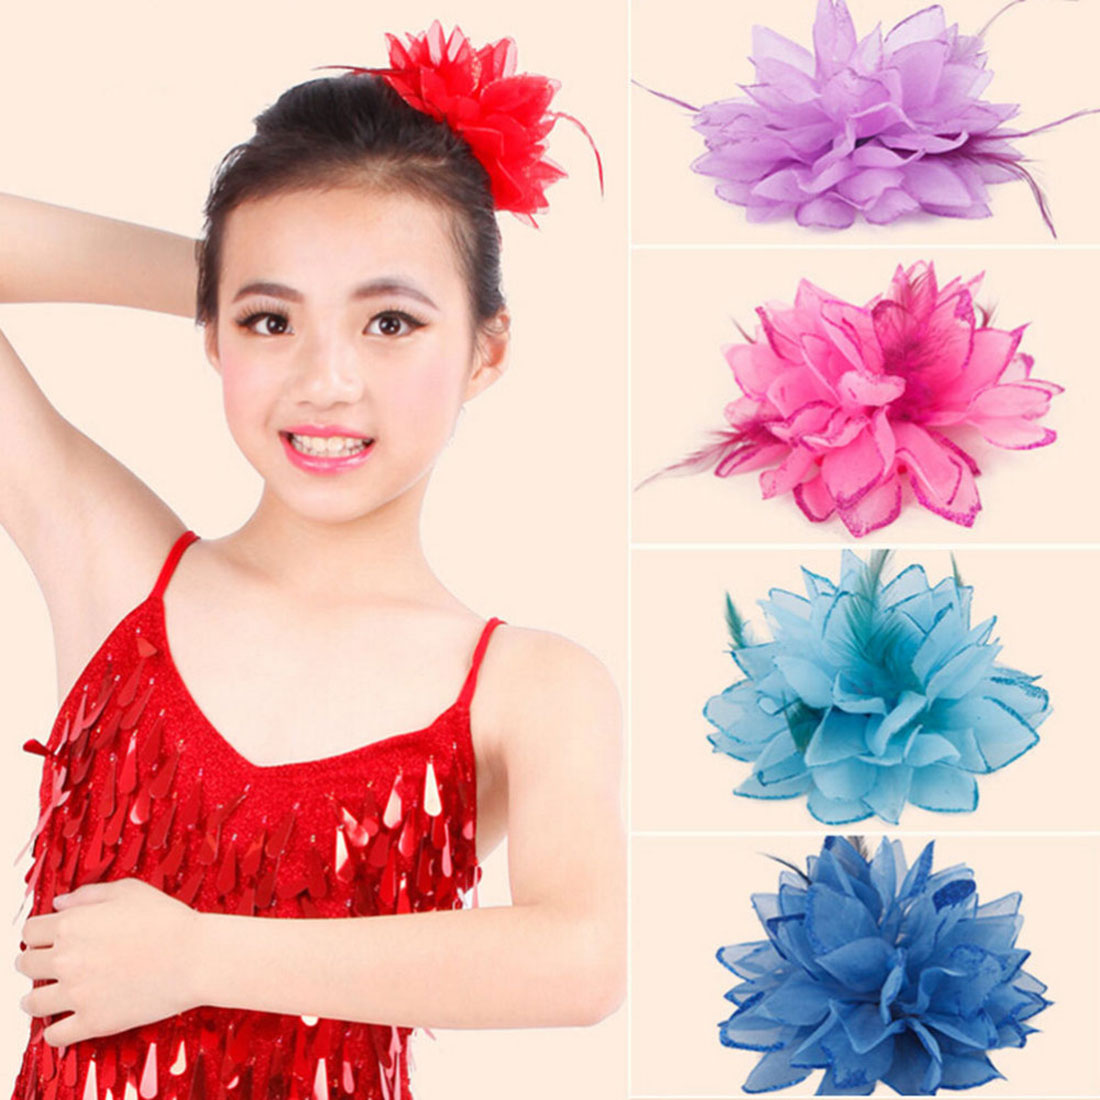 Wedding Fascinator Bridesmaid Hand Hair Decoration Wrist Flower Fuchsia 4 Pcs - image 3 of 4